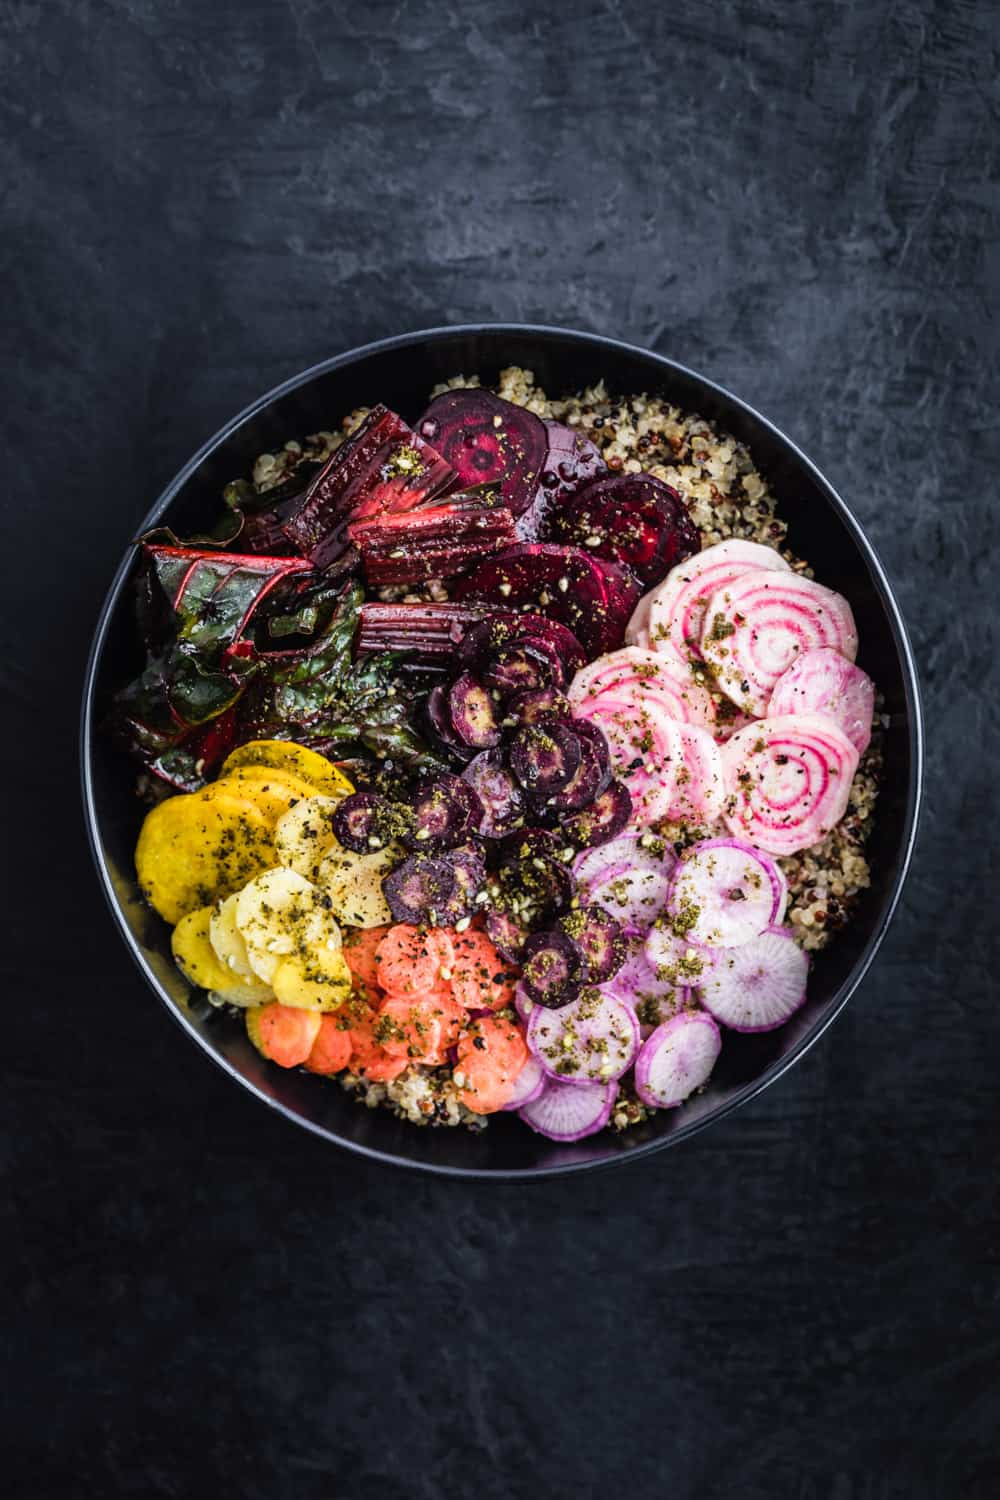 Veggie Rainbow Quinoa Bowl sprinkled with za'atar, no drizzle.